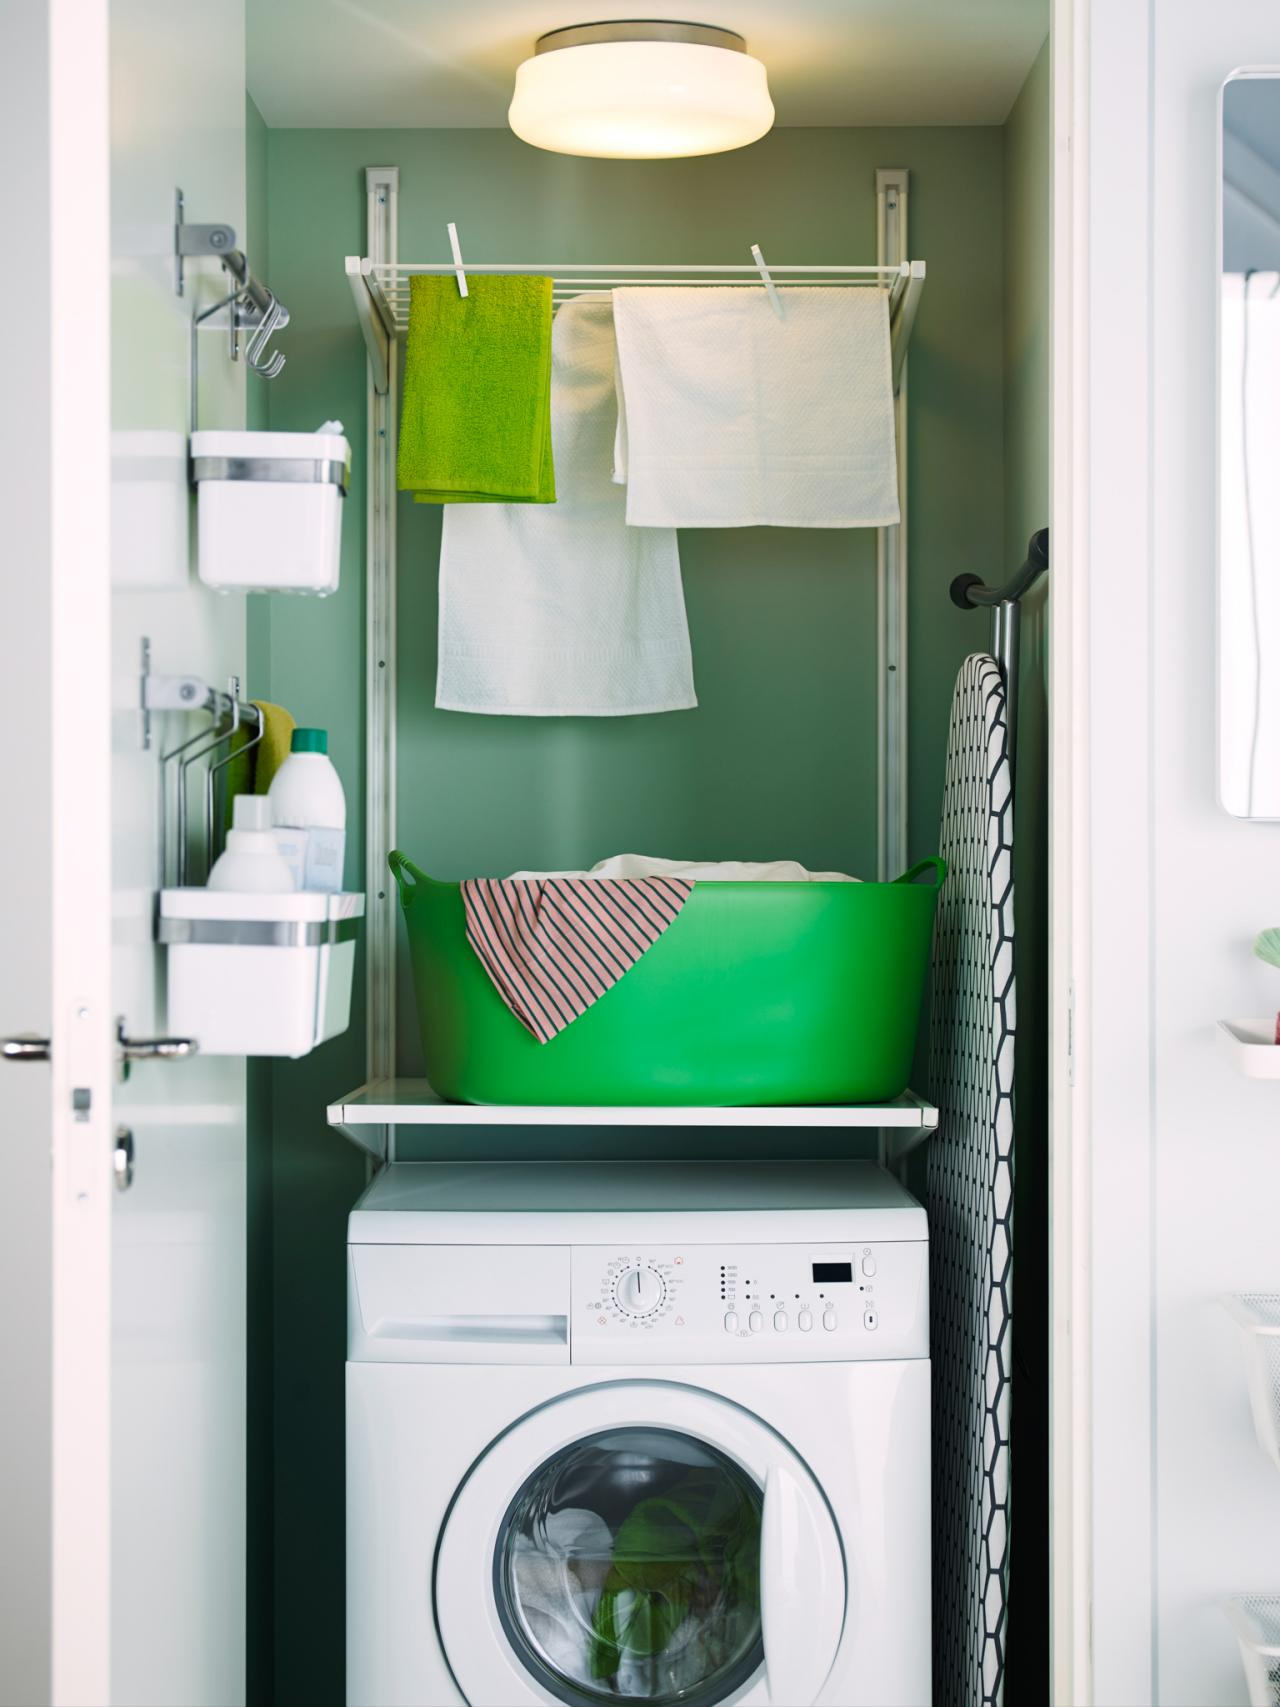 Laundry Room Cabinet Ideas: Pictures, Options, Tips & Advice | HGTV